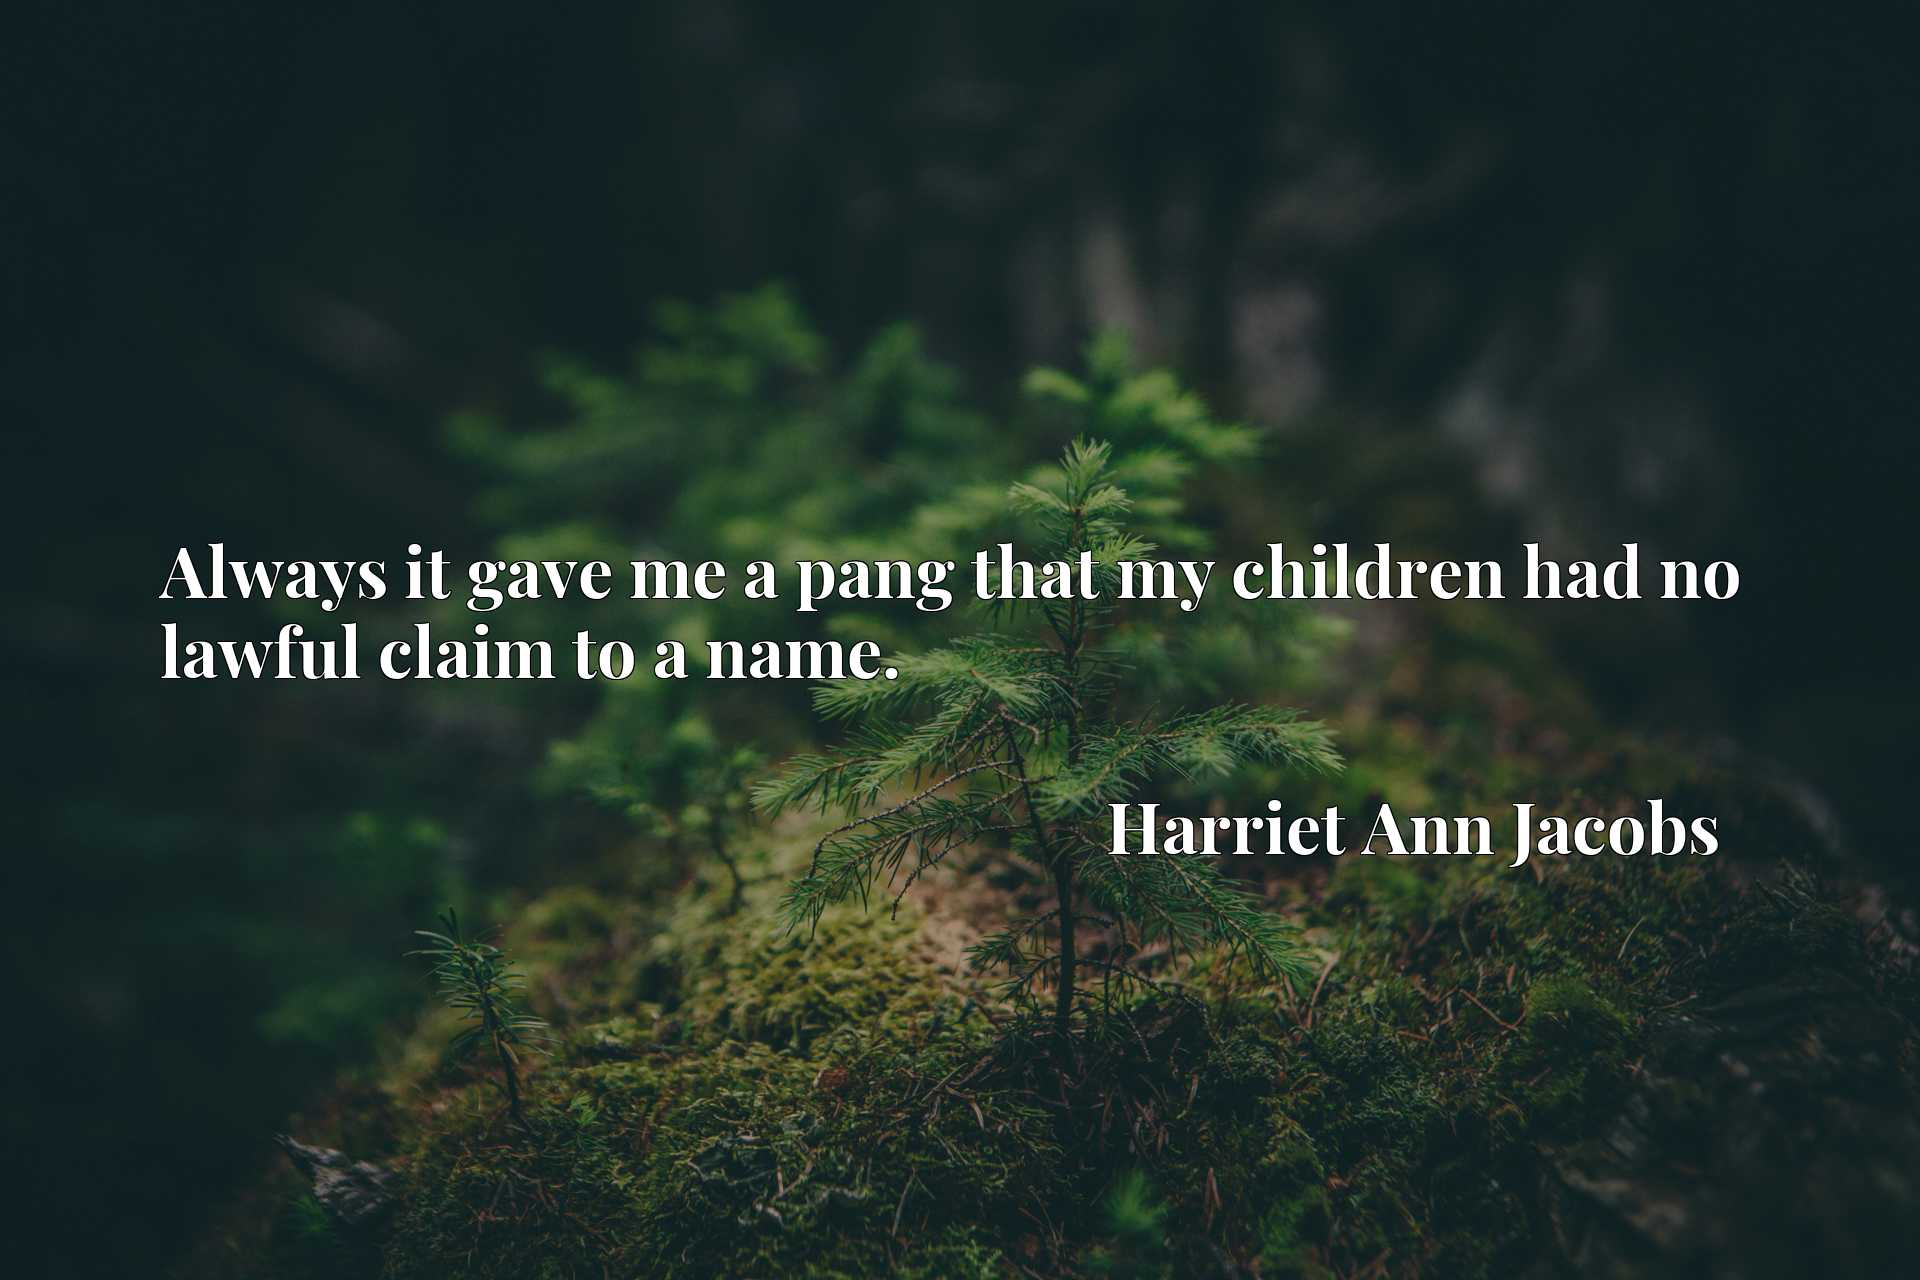 Quote Picture :Always it gave me a pang that my children had no lawful claim to a name.